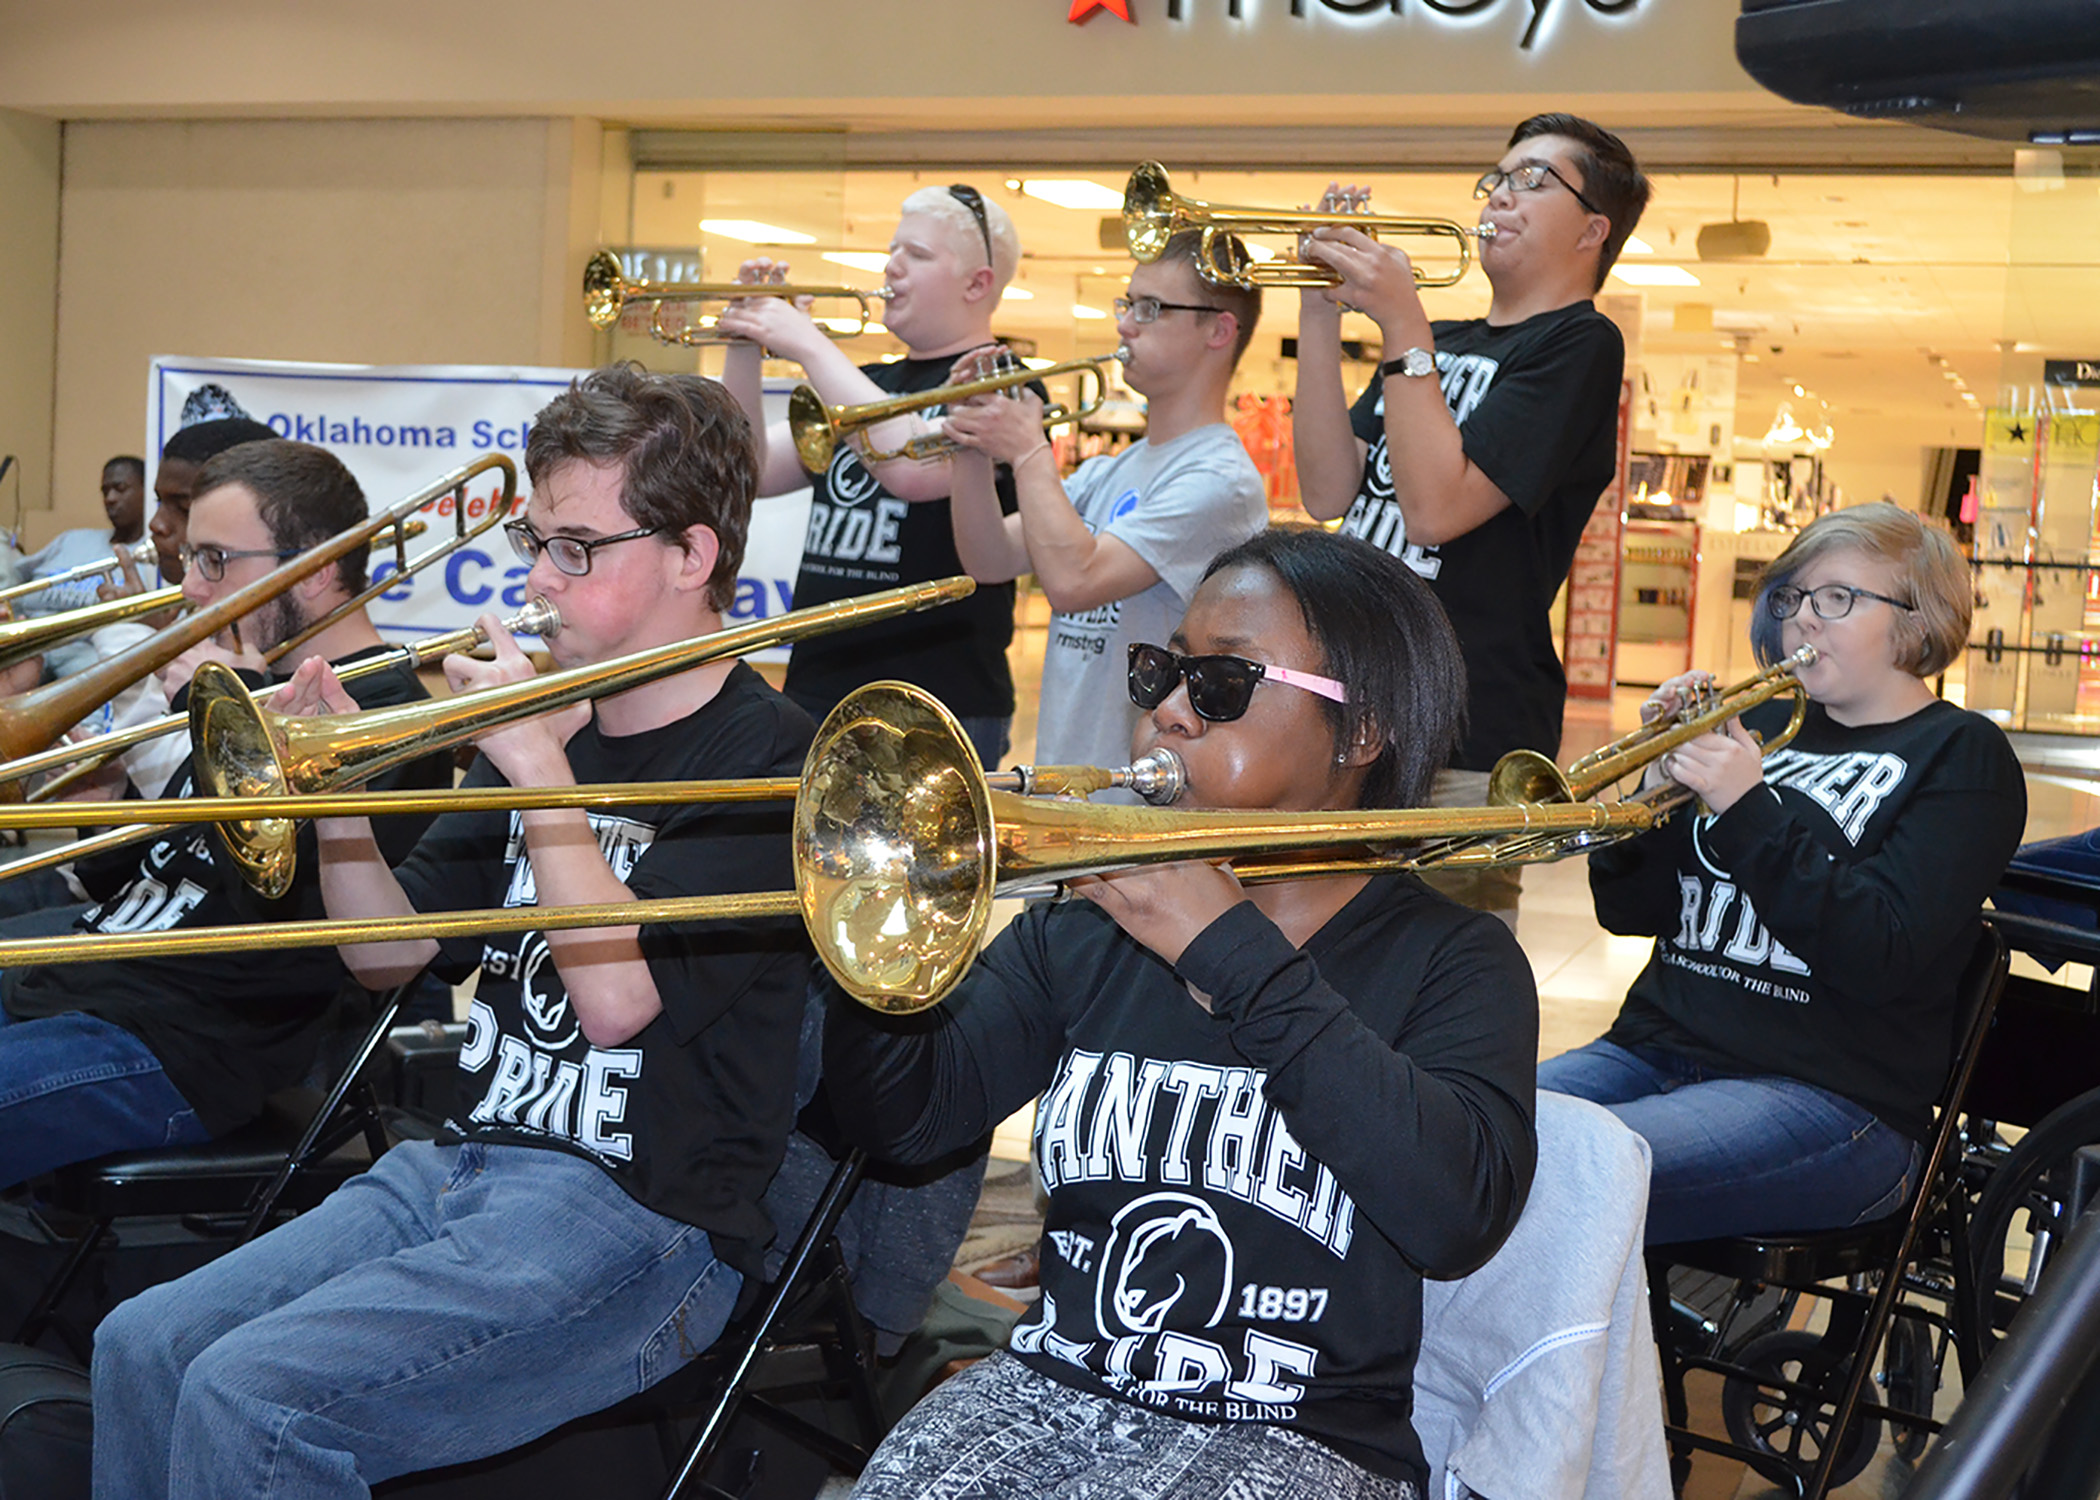 Students play trombones and trumpets in front of a mall store